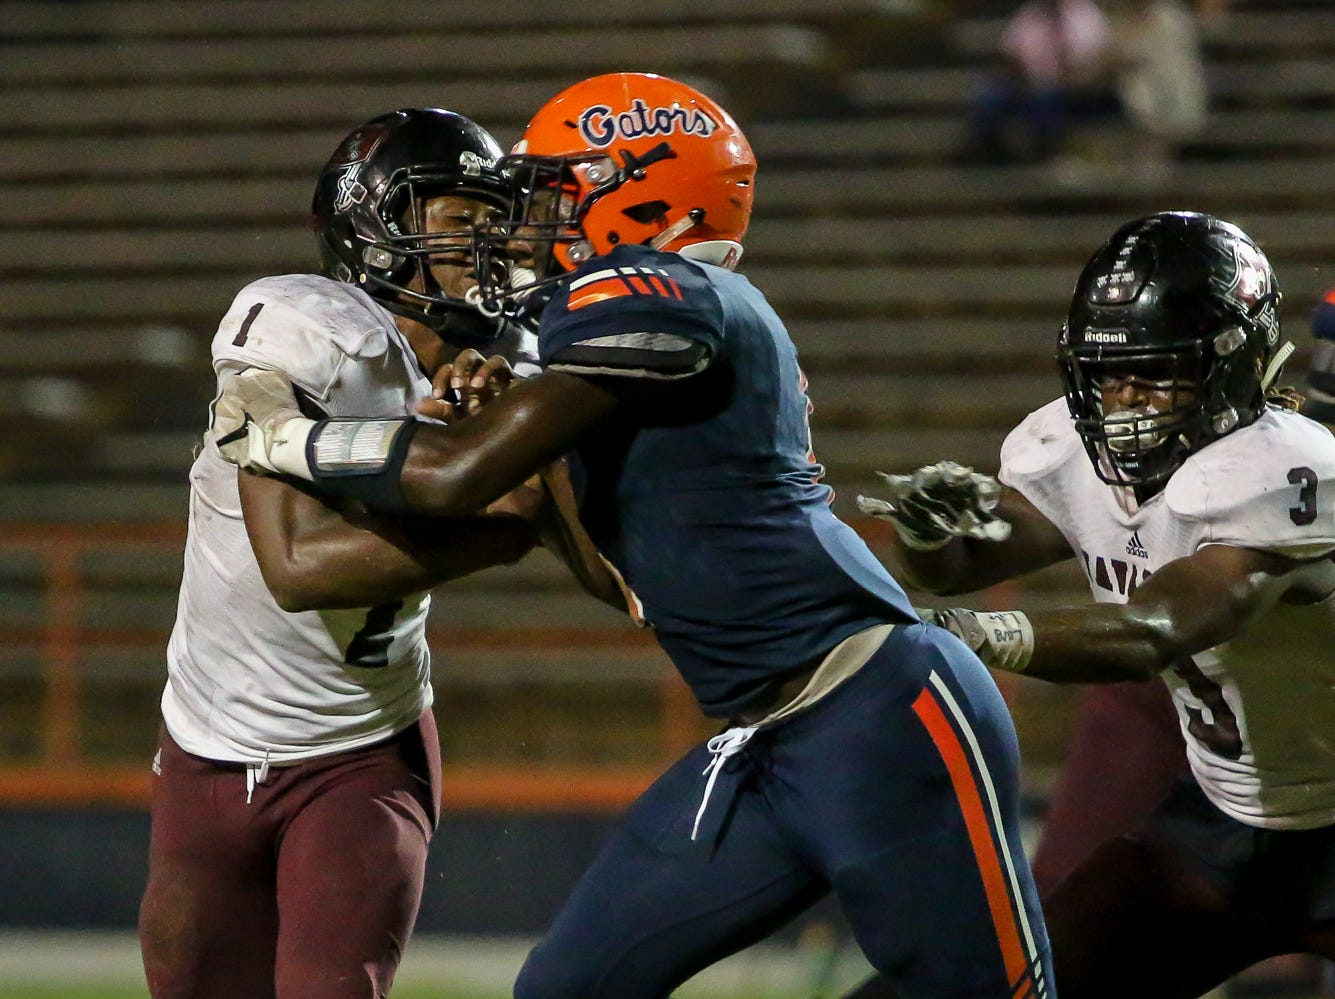 Escambia's Frank Peasant (1) pushes Navarre quarterback Marlon Courtney III (1) backward for a loss in the homecoming game at Escambia High School on Friday, October 5, 2018.